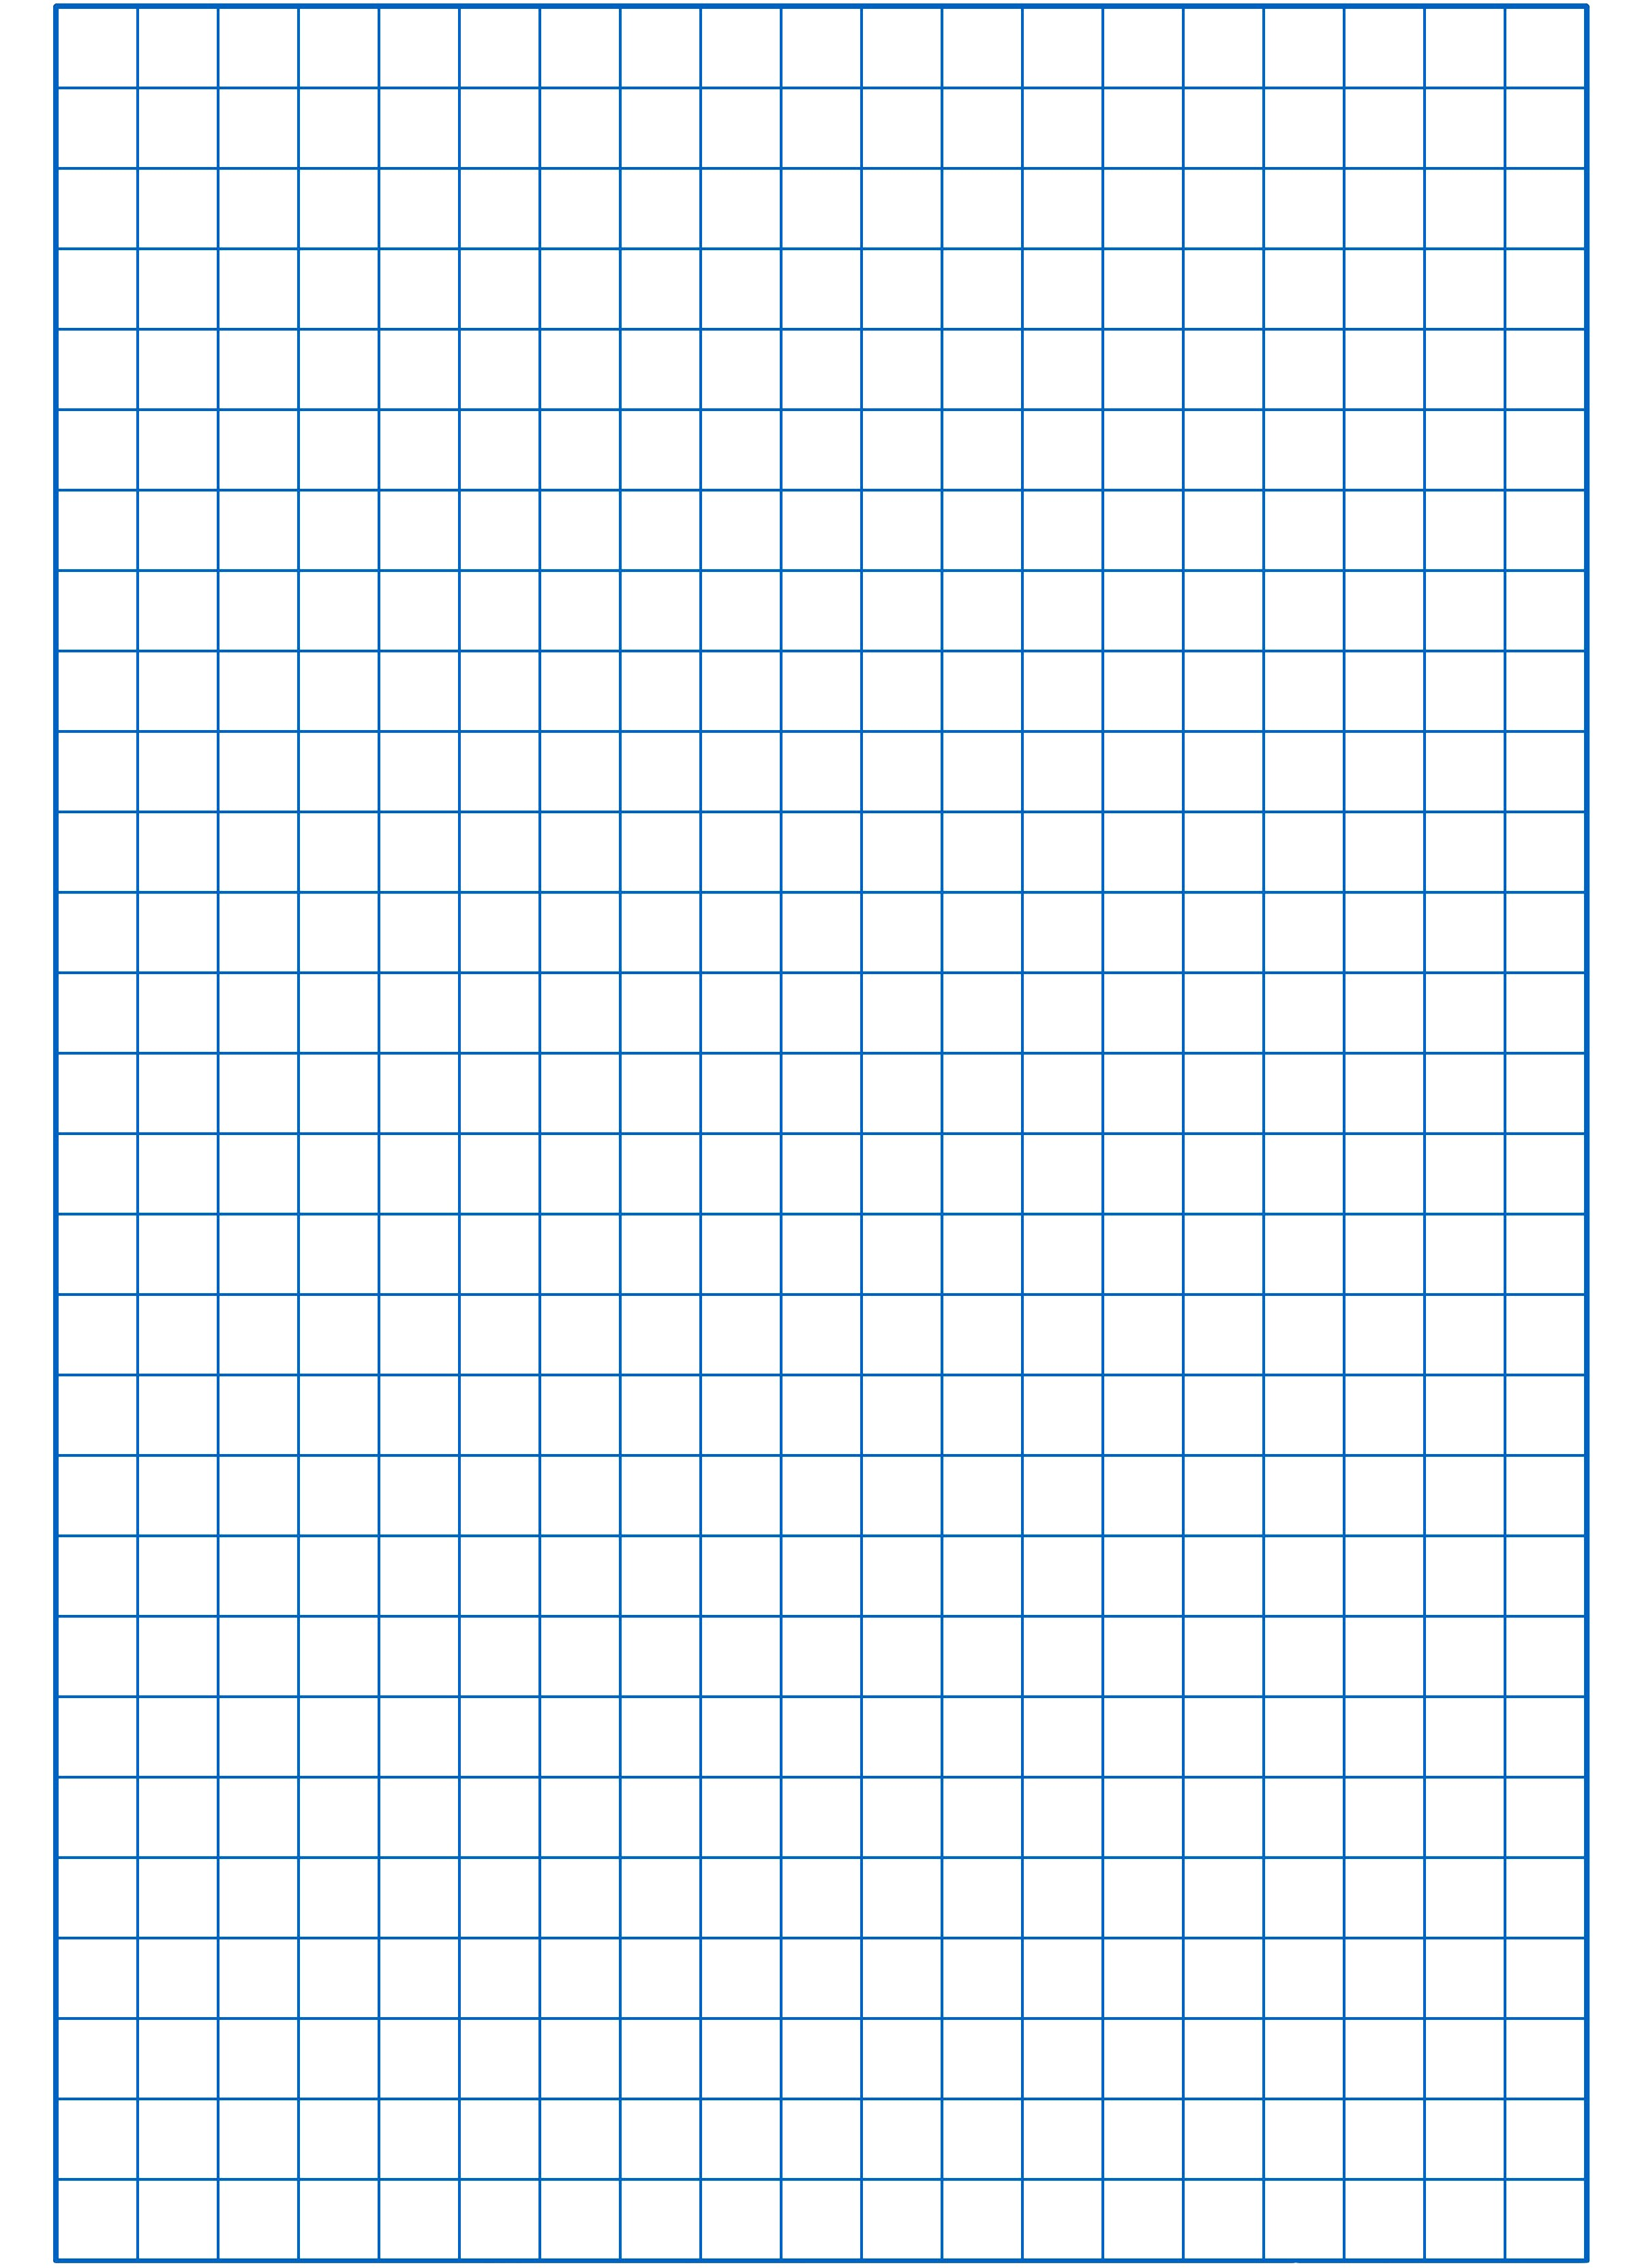 Grid Drawing Worksheets Pdf | Free download on ClipArtMag